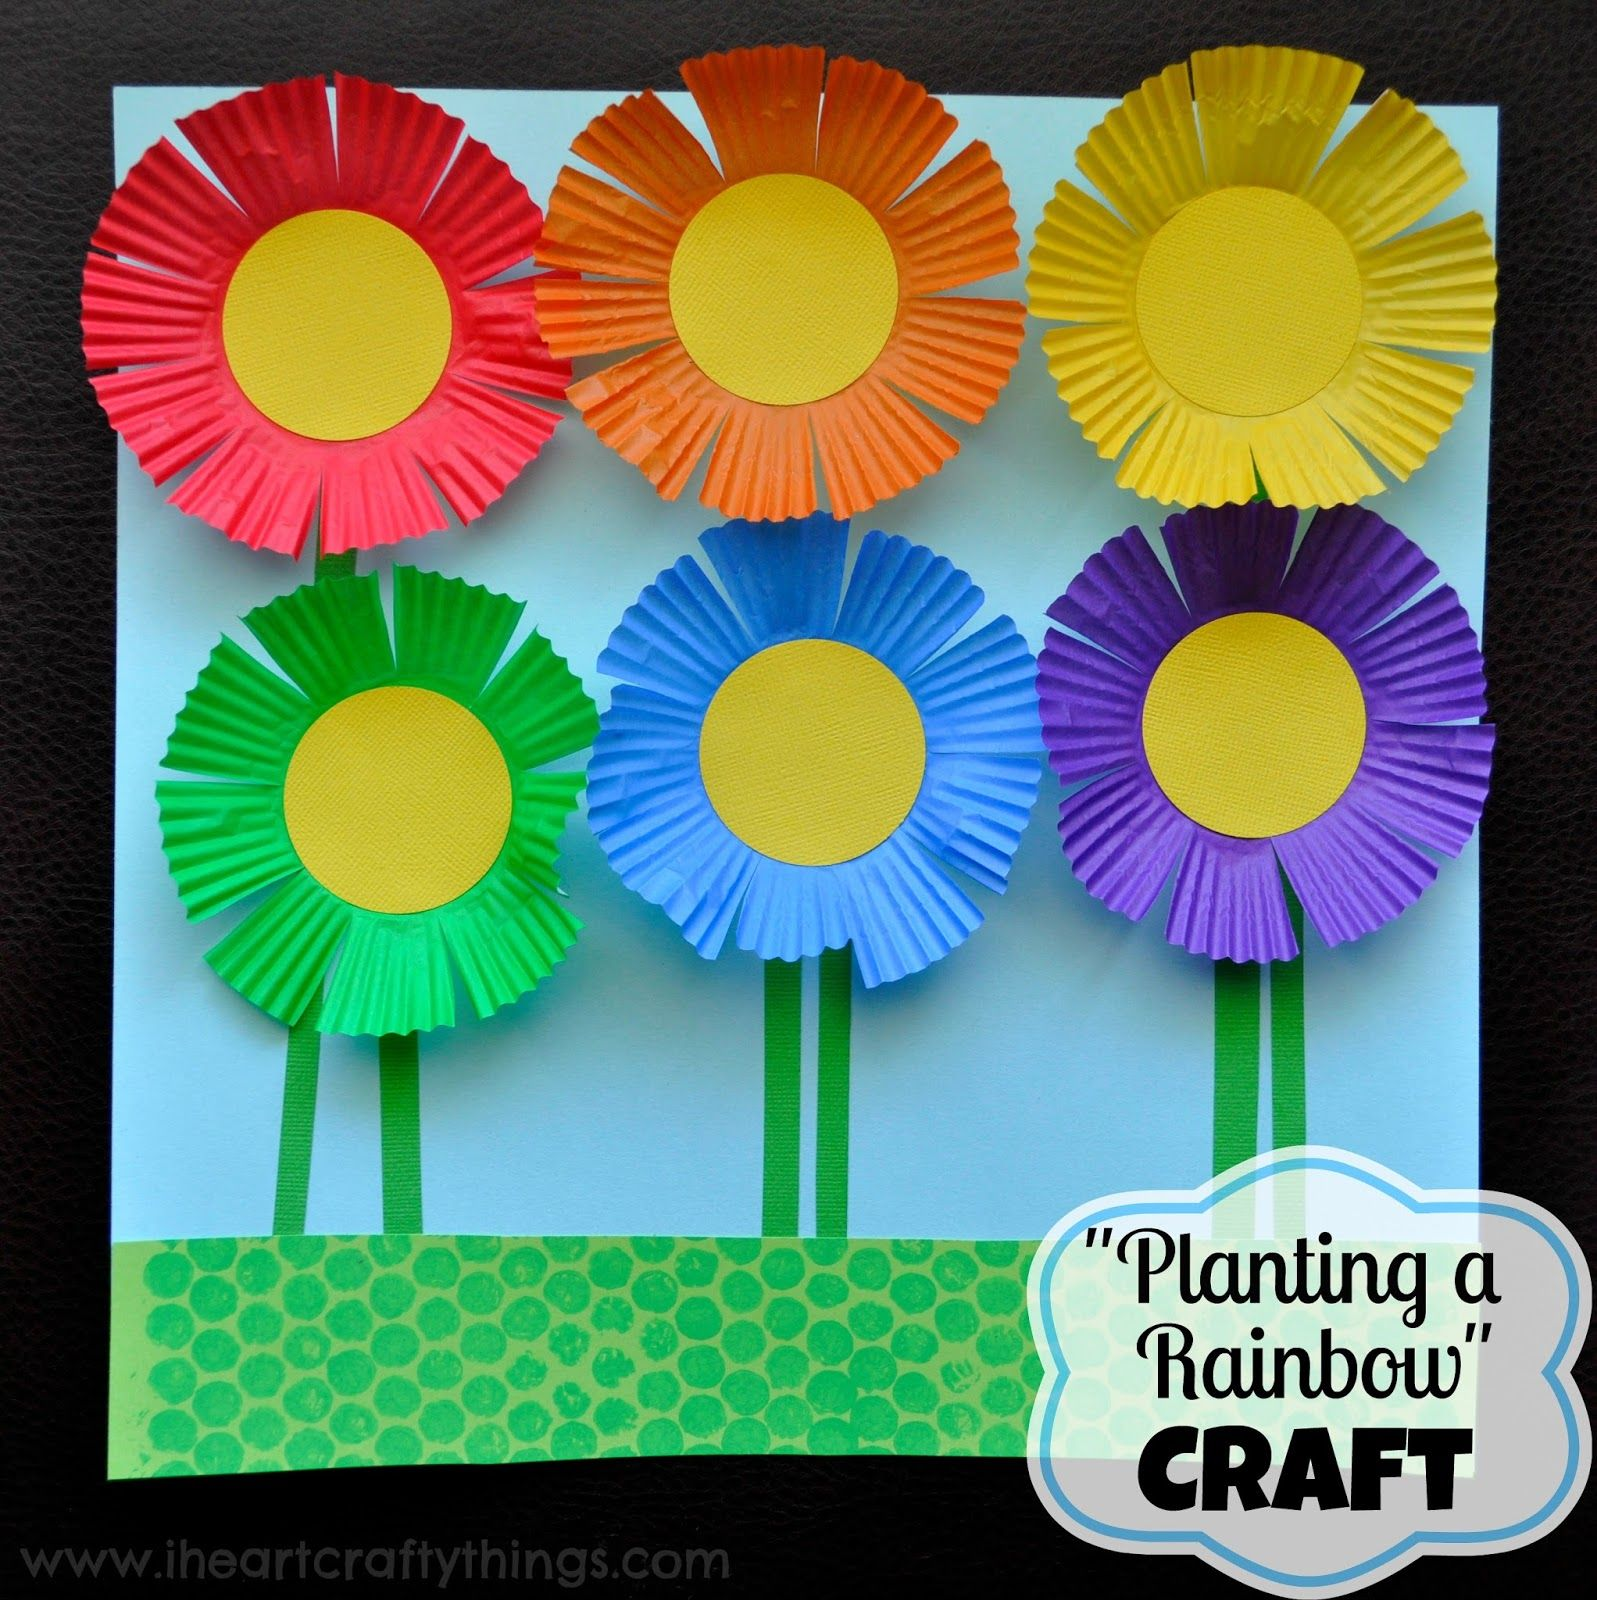 Plants arts and crafts - 30 Flower Crafts For Kids